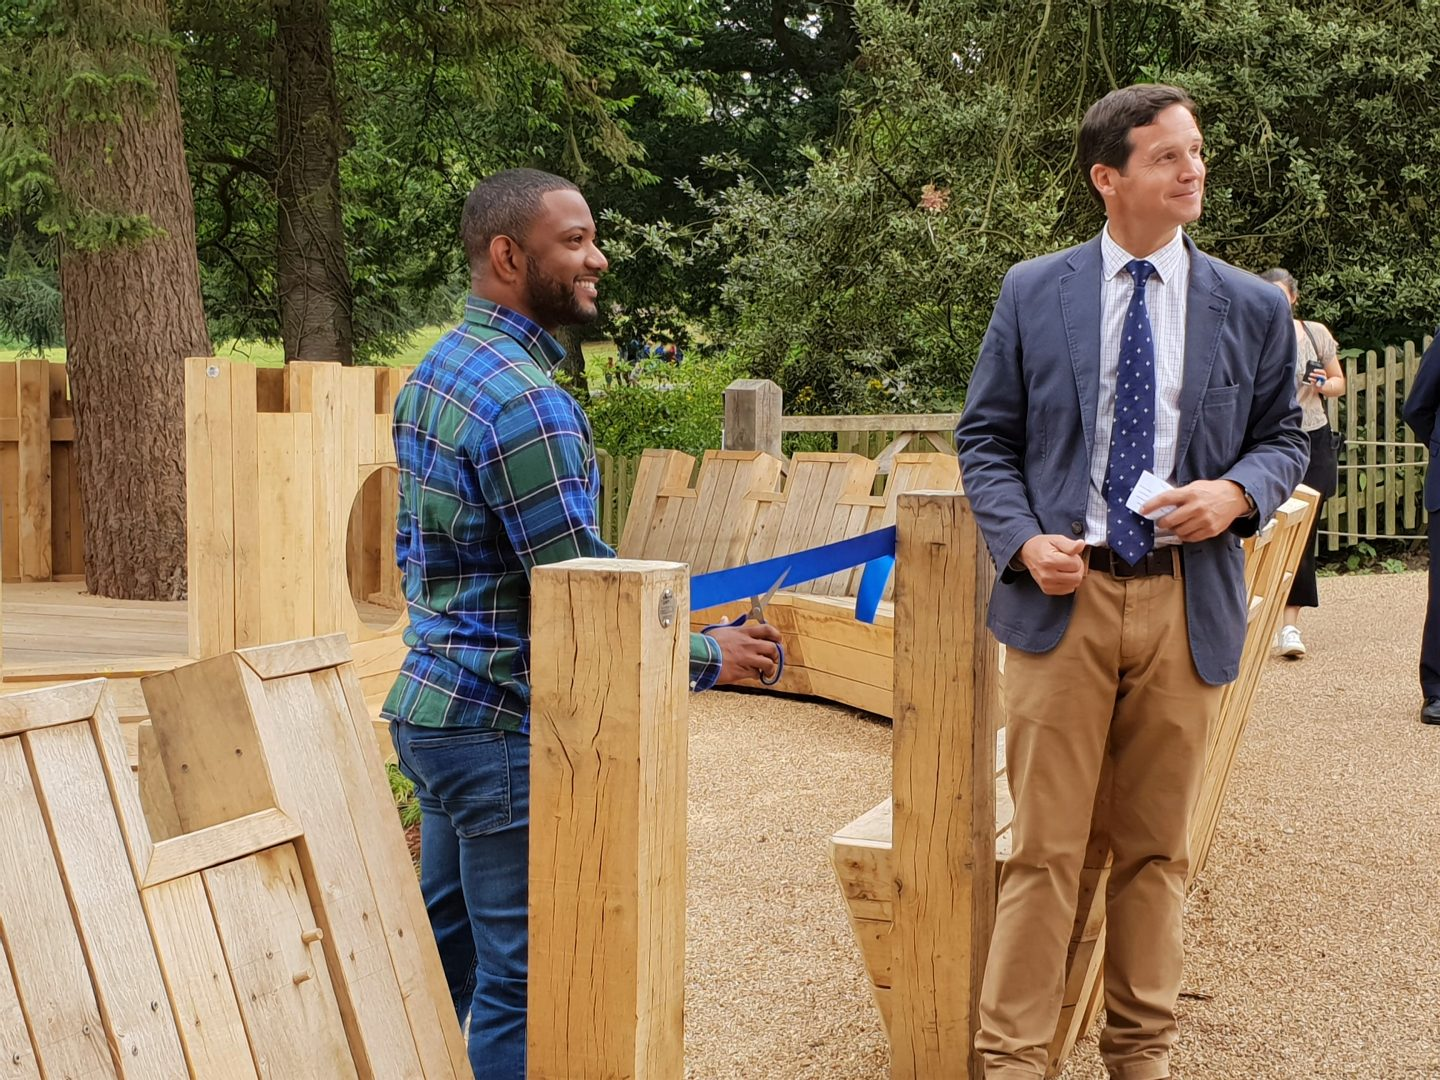 JB Gill opening new playground for under 7s at Hever Castle